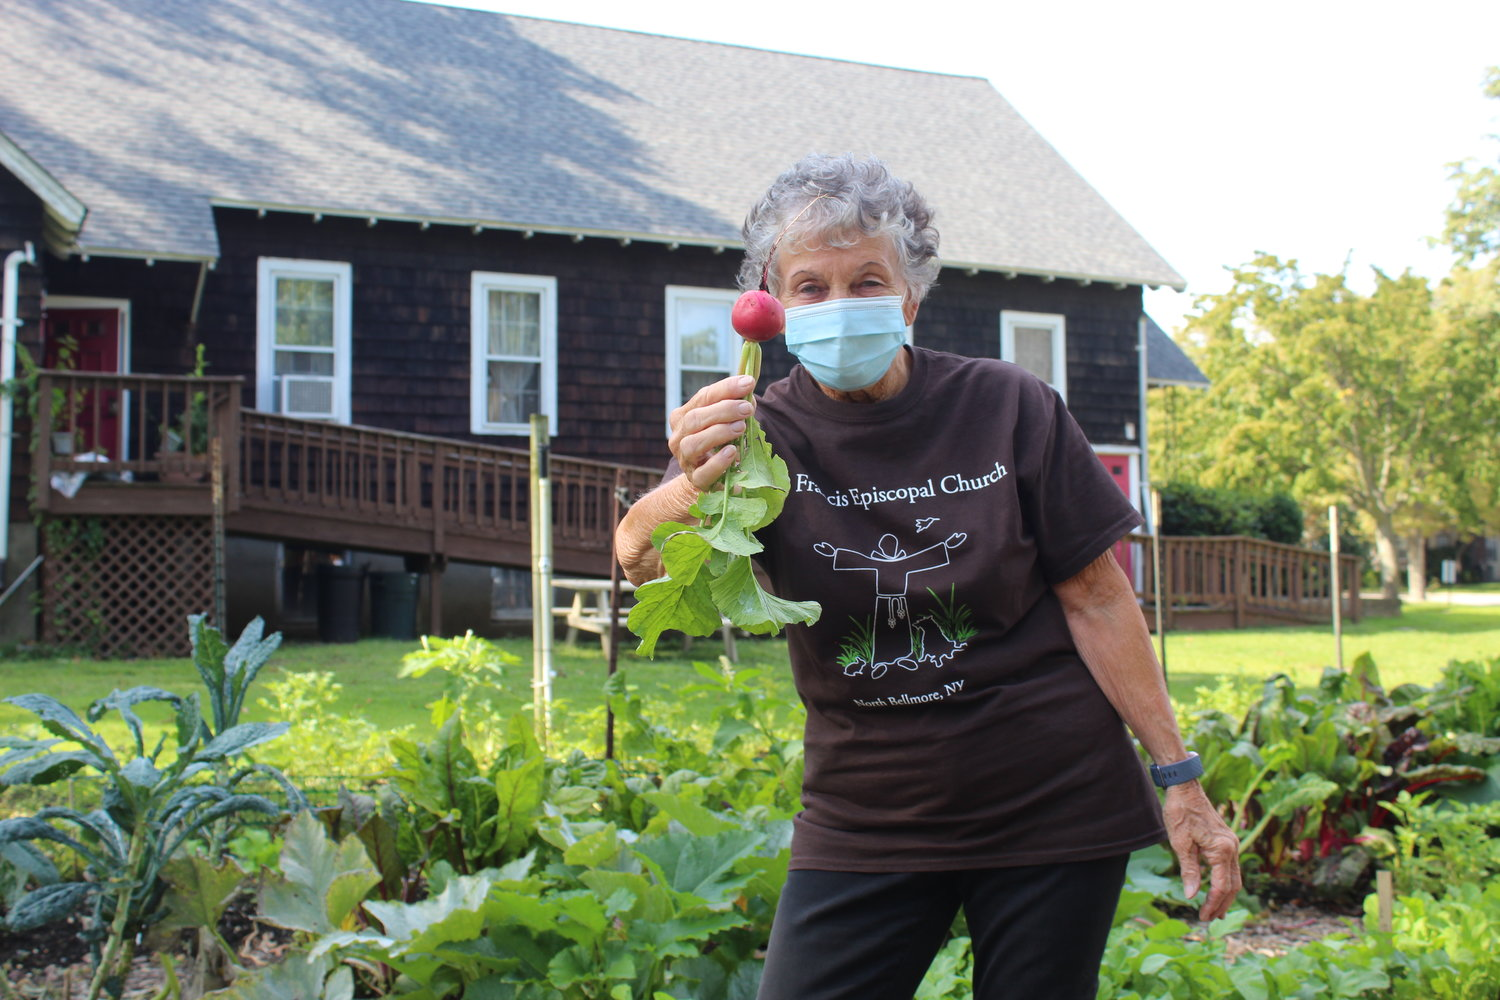 Camille Gaynor showed off a deep pink radish pulled fresh from the garden at St. Francis Episcopal Church in North Bellmore.